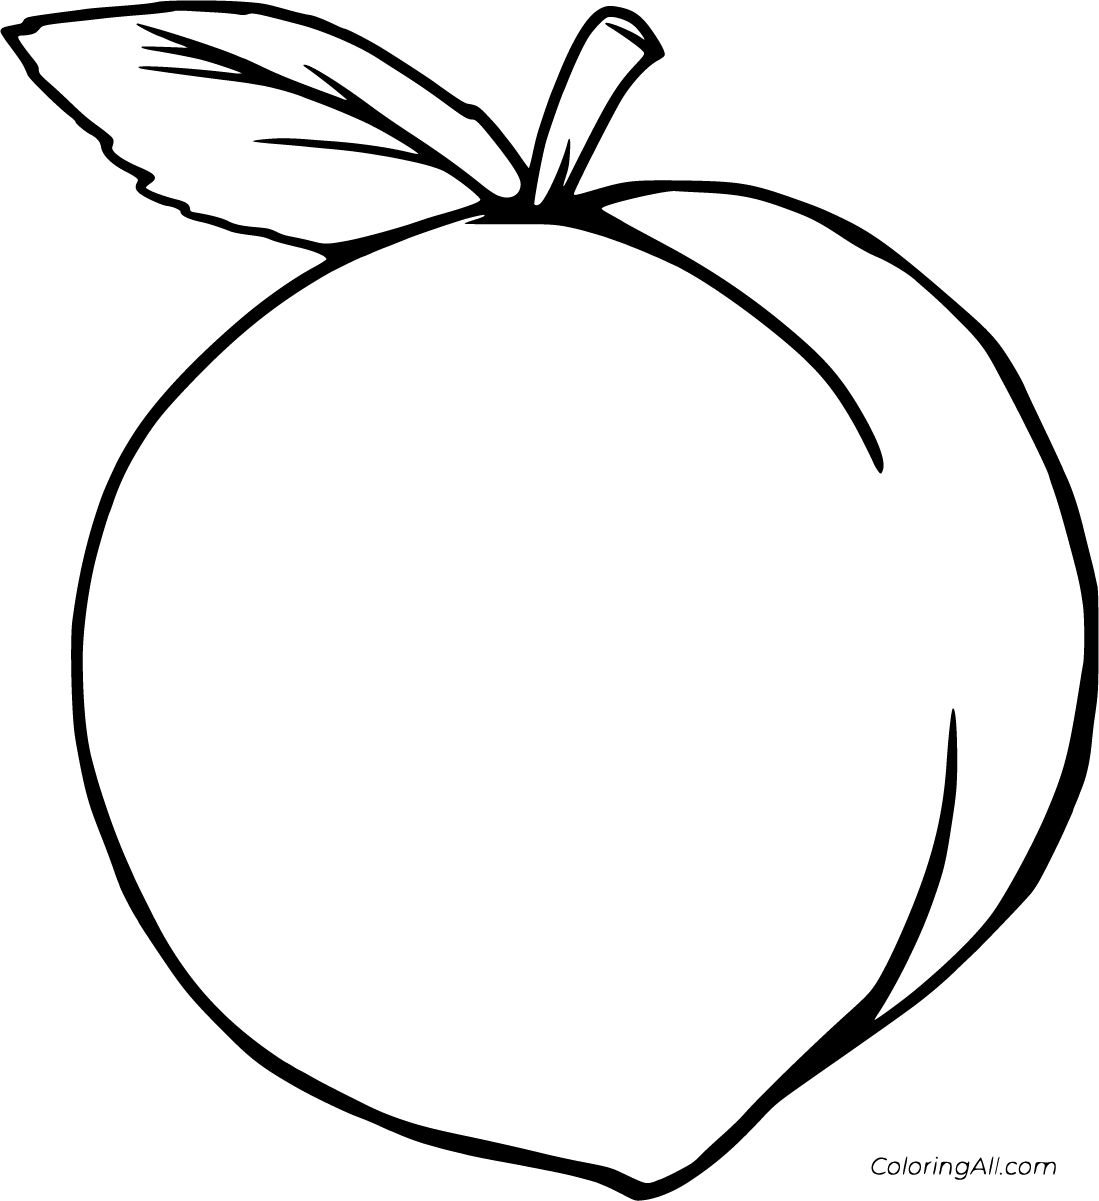 peach coloring pages peach coloring pages pages coloring peach 1 1